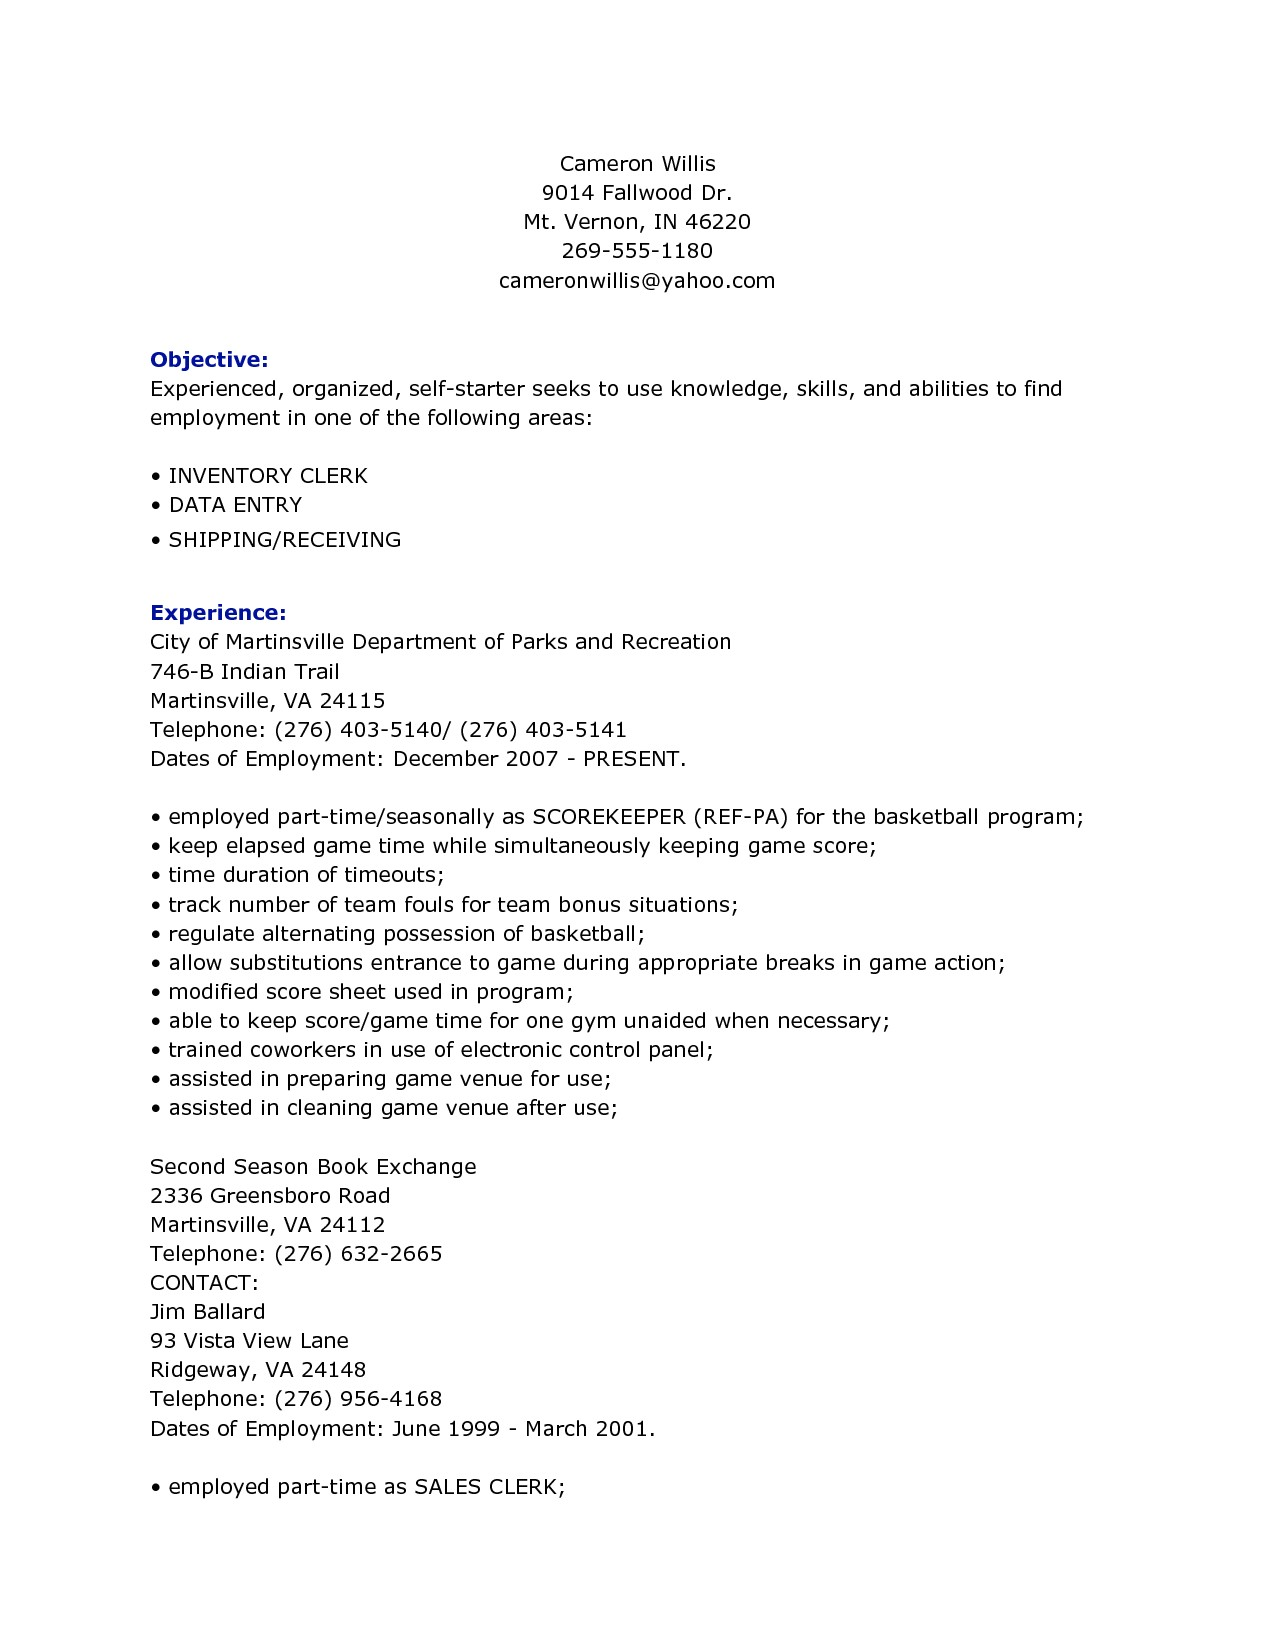 Sample Resume for Inventory Clerk Inventory Clerk Job Description for Resume Resume Ideas